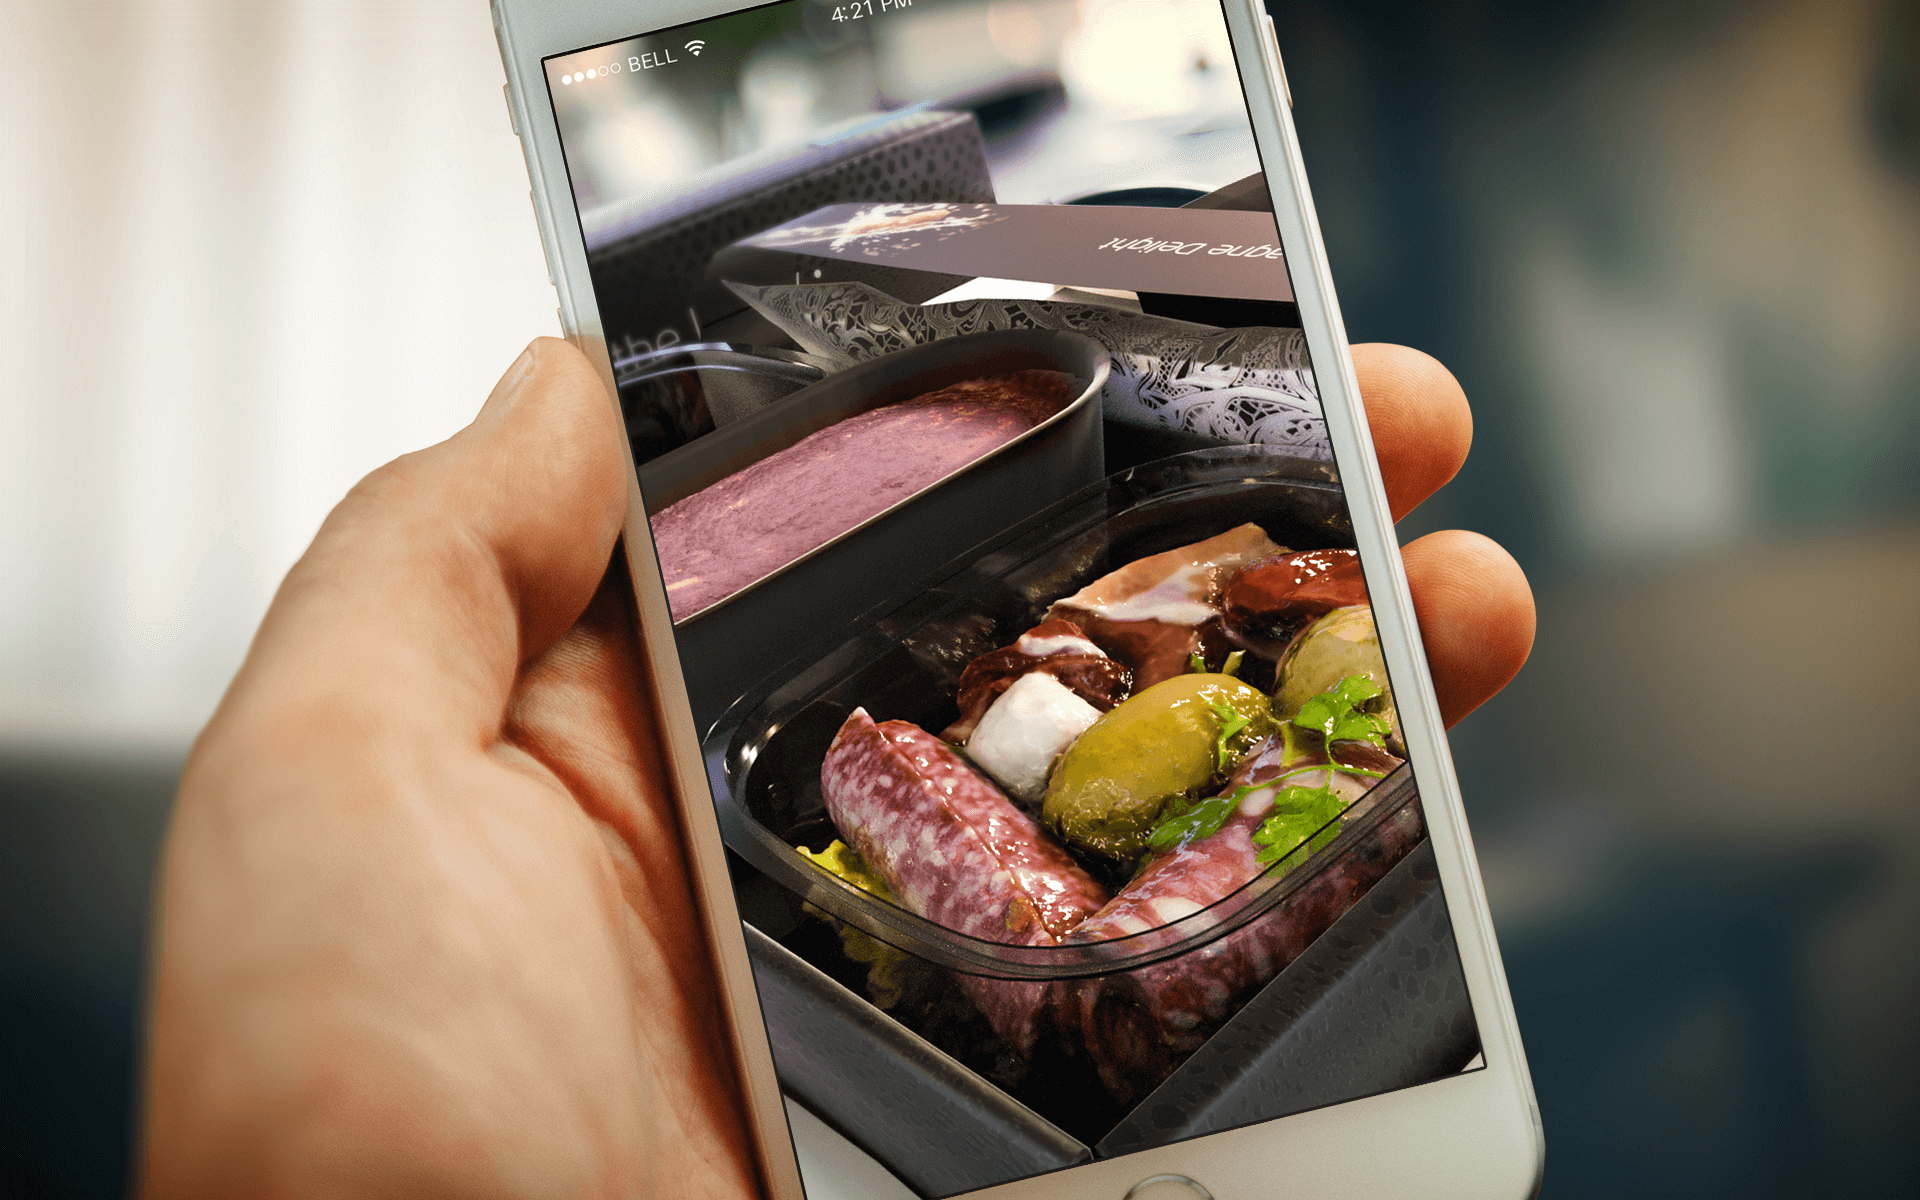 KLM - Augmented Reality meals